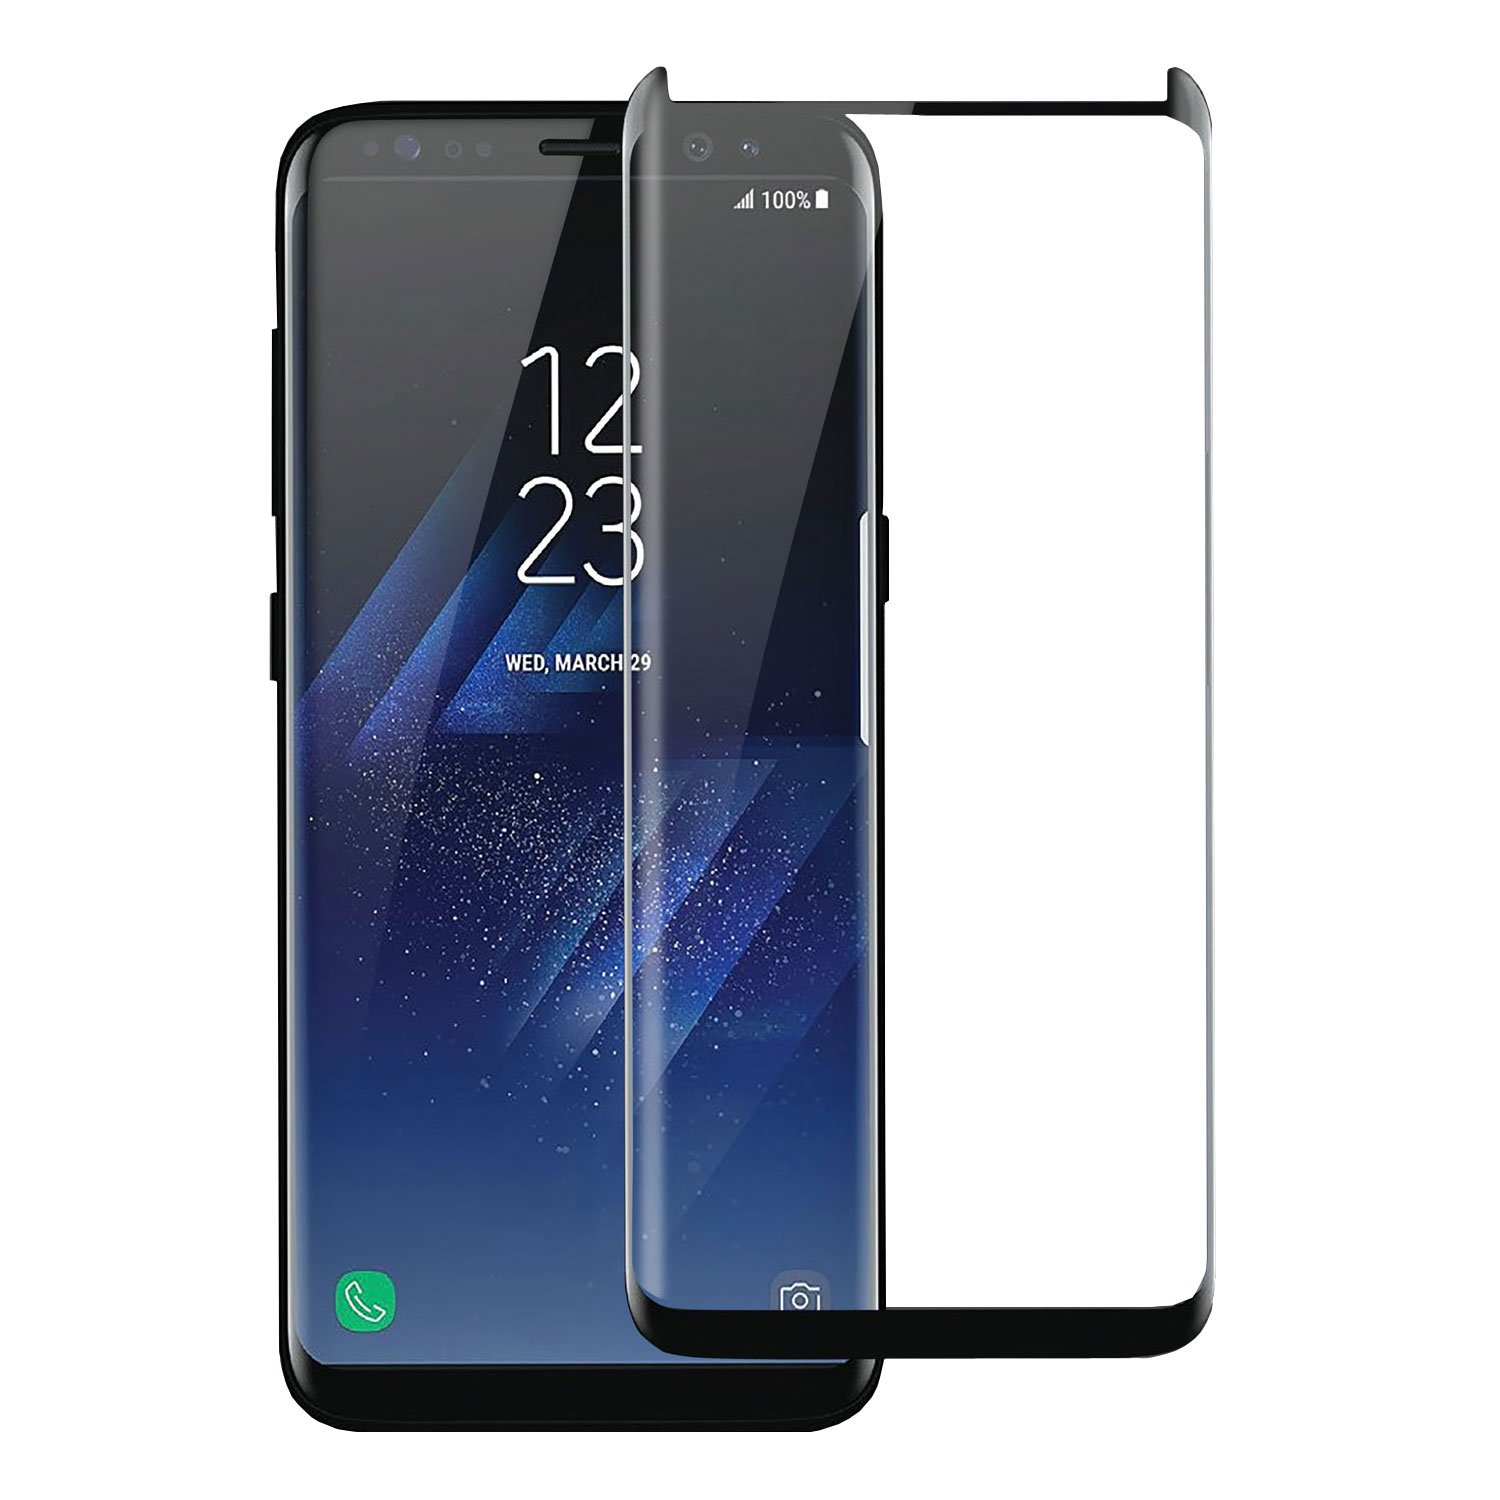 brand new b0315 9f2d8 Samsung S8 Plus Screen Protector - Case Friendly/Compatible - 9H Tempered  Glass - Olixar - Samsung Galaxy S8 Plus S8+ - Black